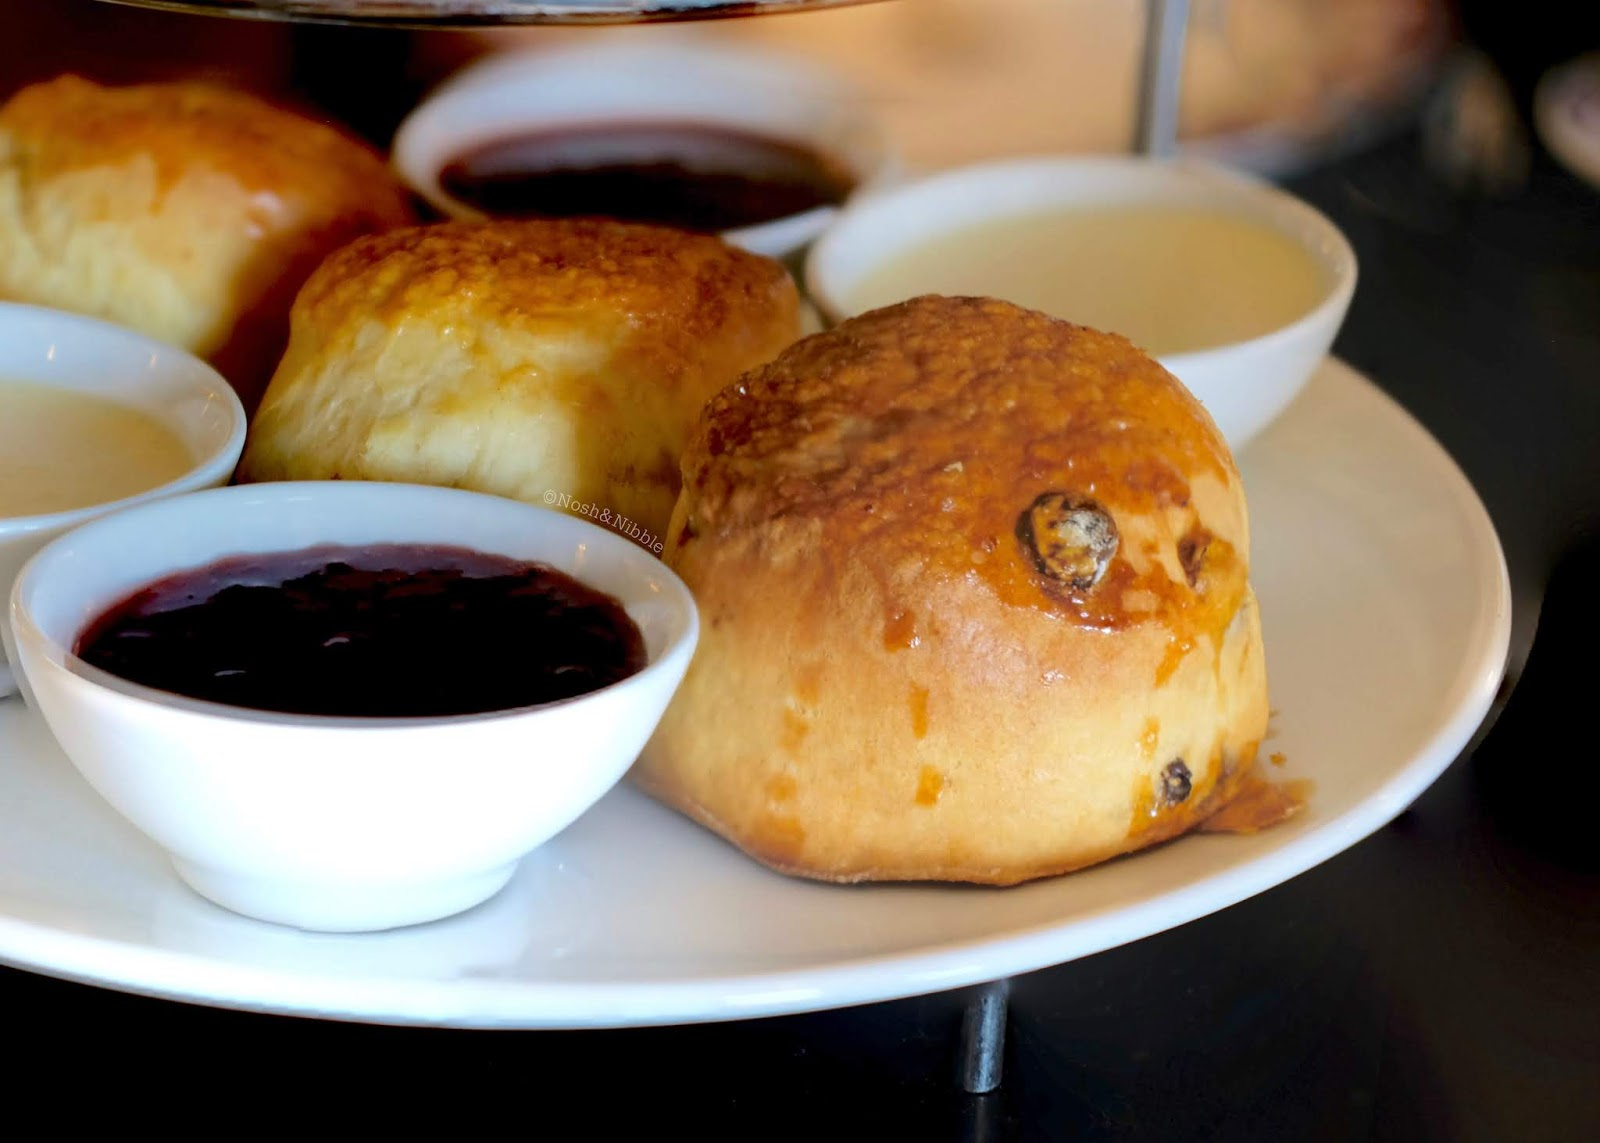 Fairmont Empress | Tea at The Empress Review | Signature Empress Raisin Scone